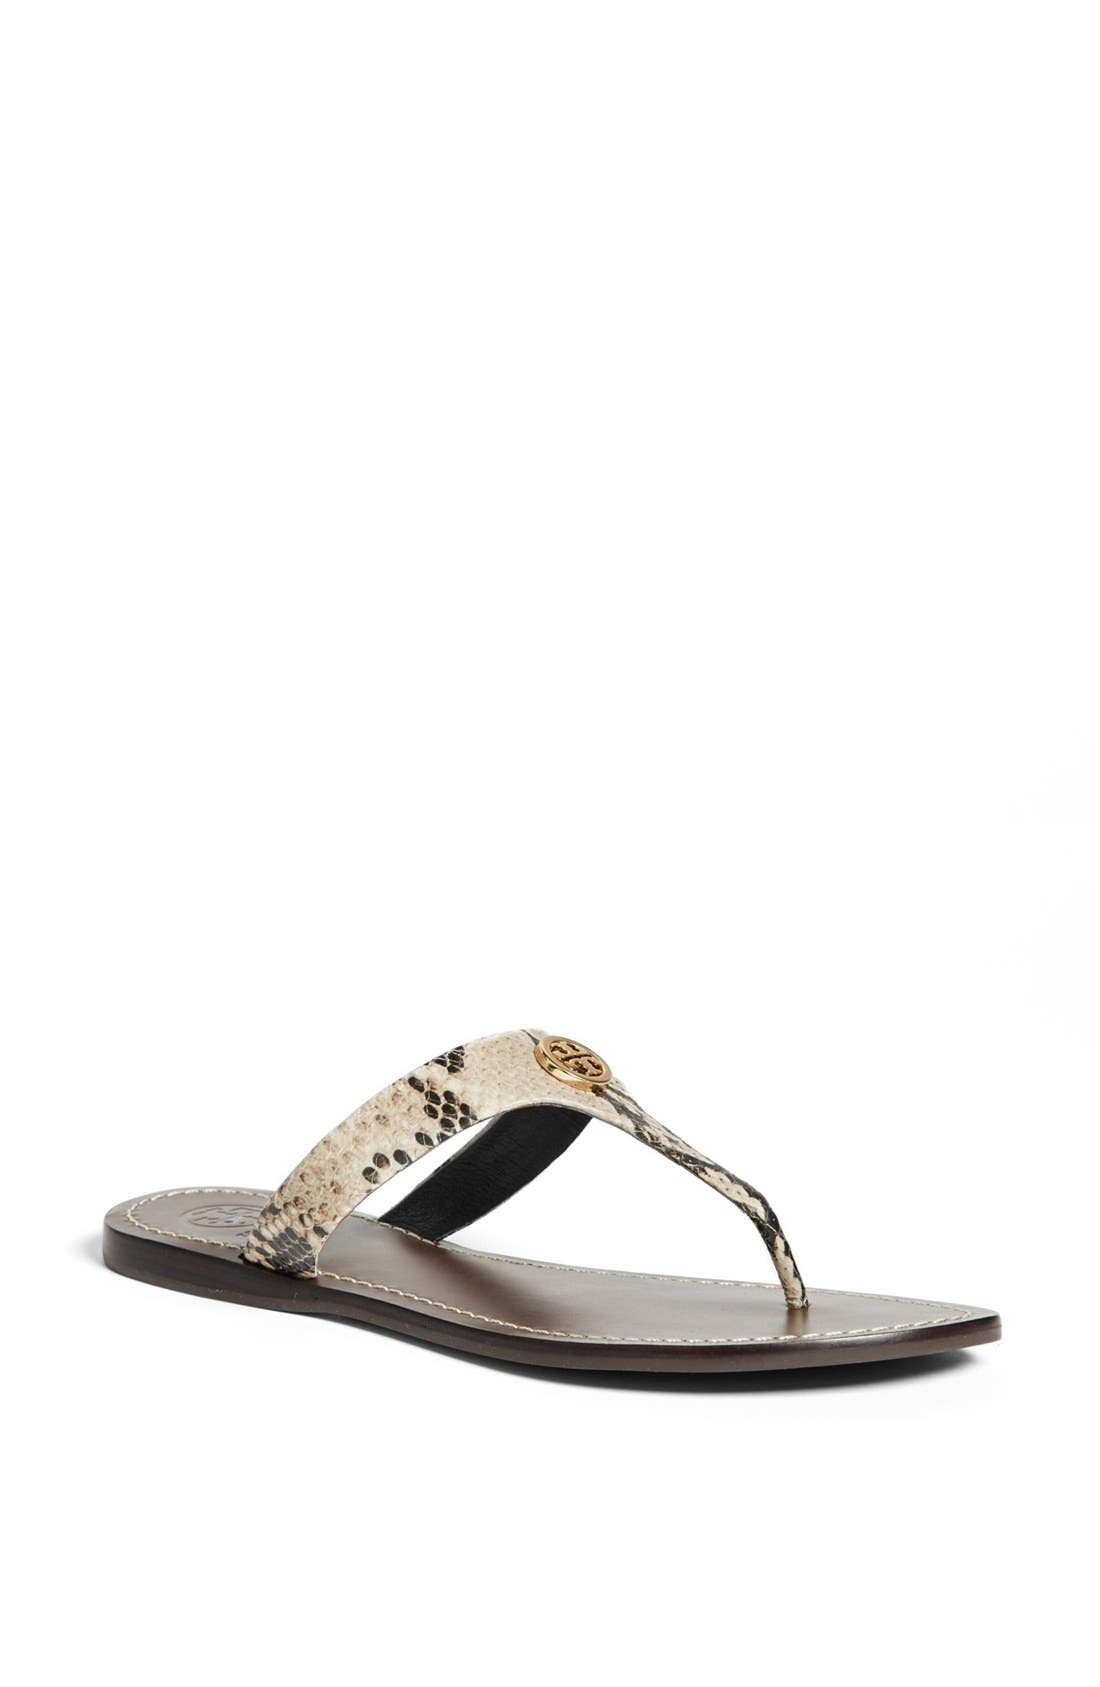 Alternate Image 1 Selected - Tory Burch 'Cameron' Thong Sandal